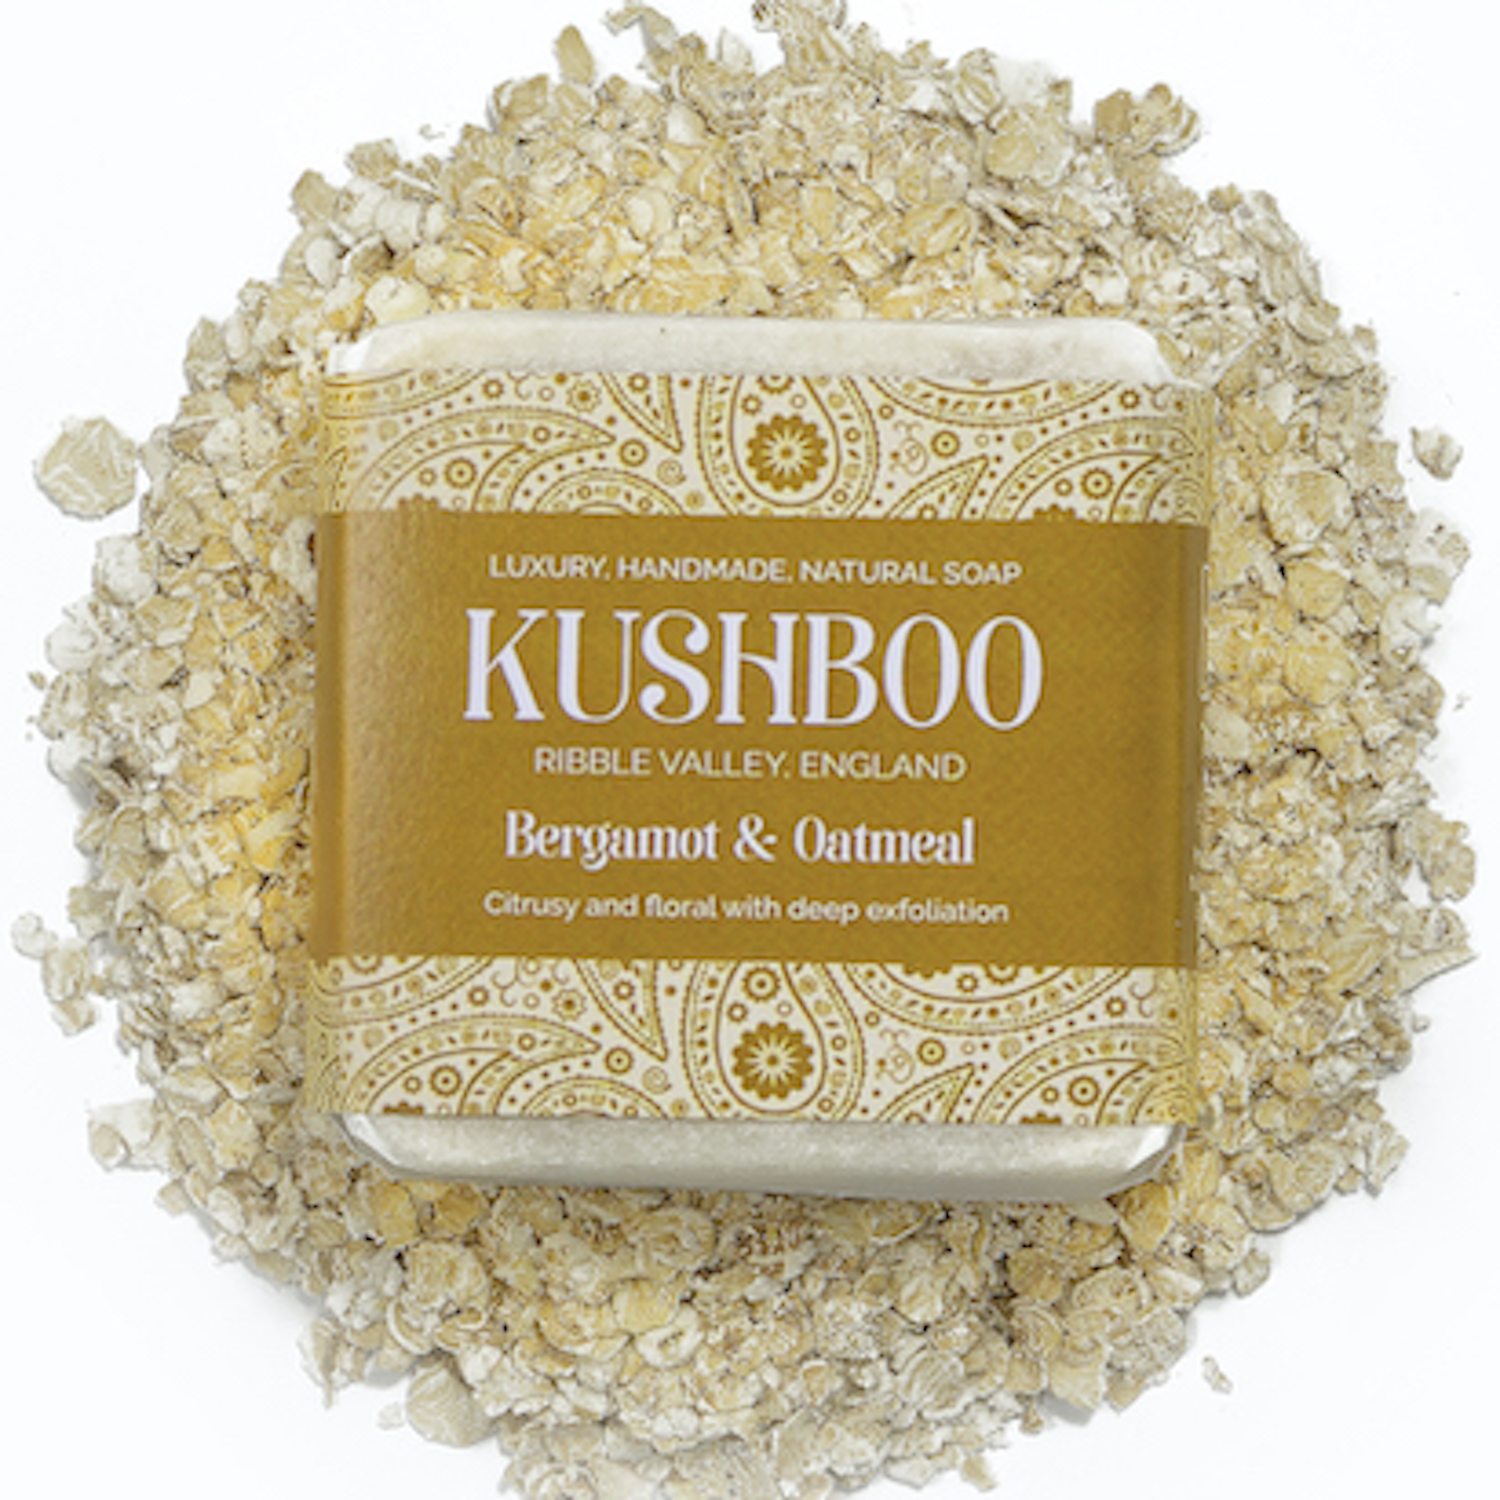 Kushboo Oatmeal and Bergamot Soap